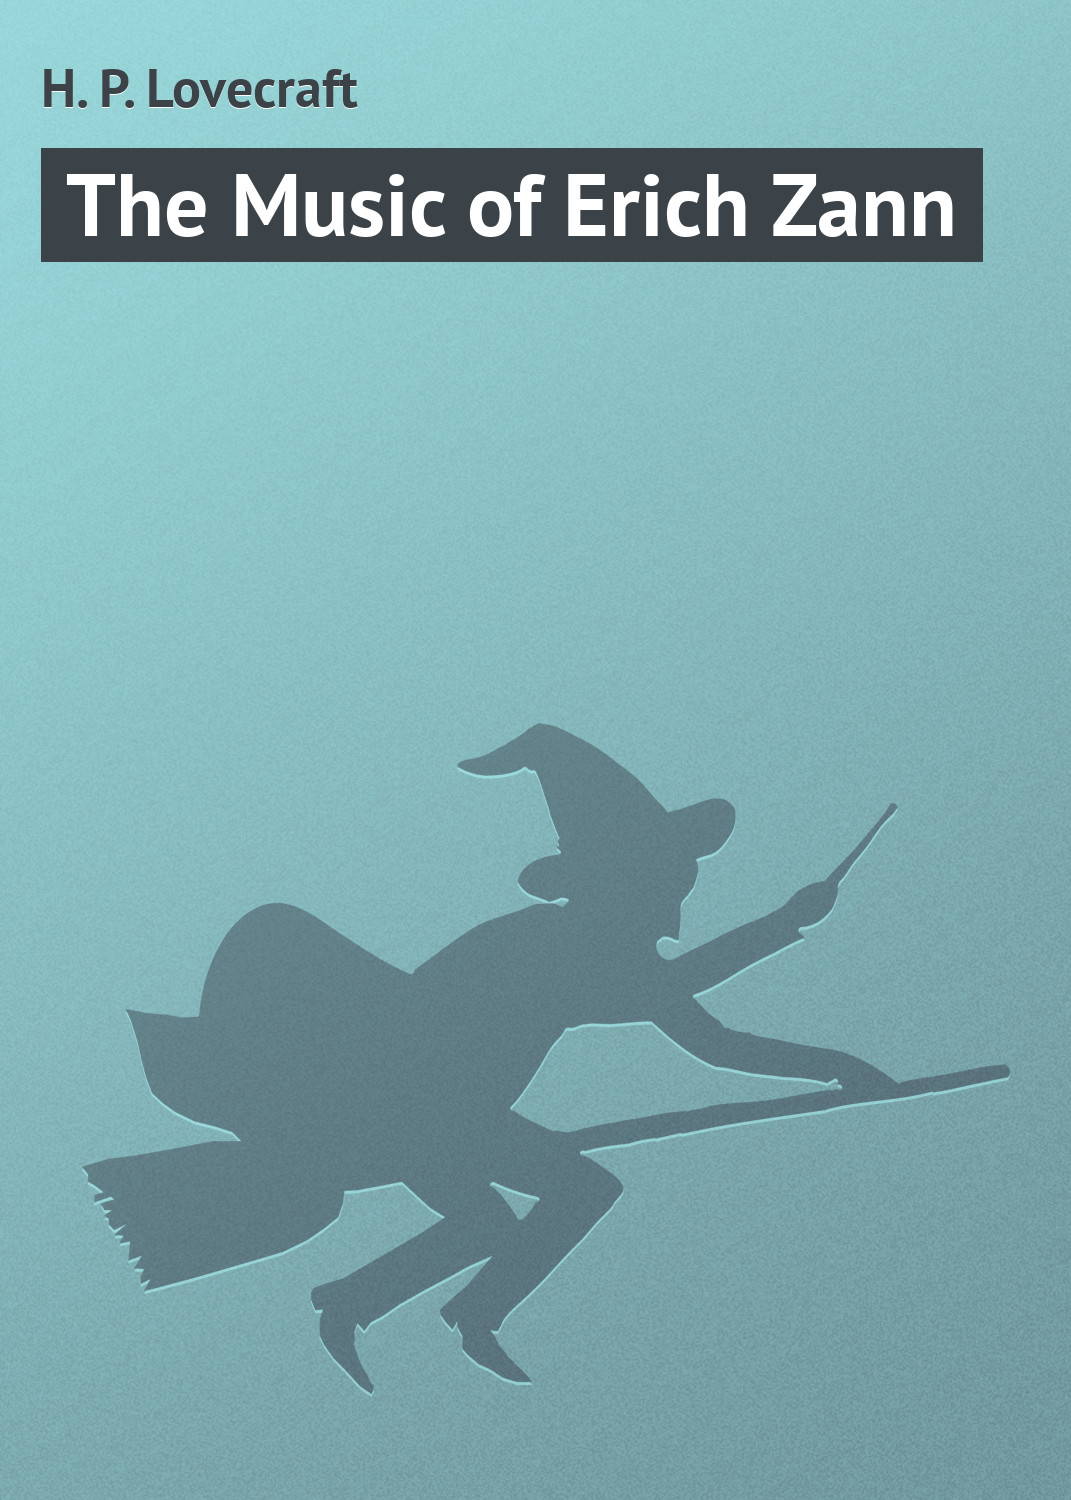 Howard Phillips Lovecraft The Music of Erich Zann schmidt p trans the plays of anton chekhov